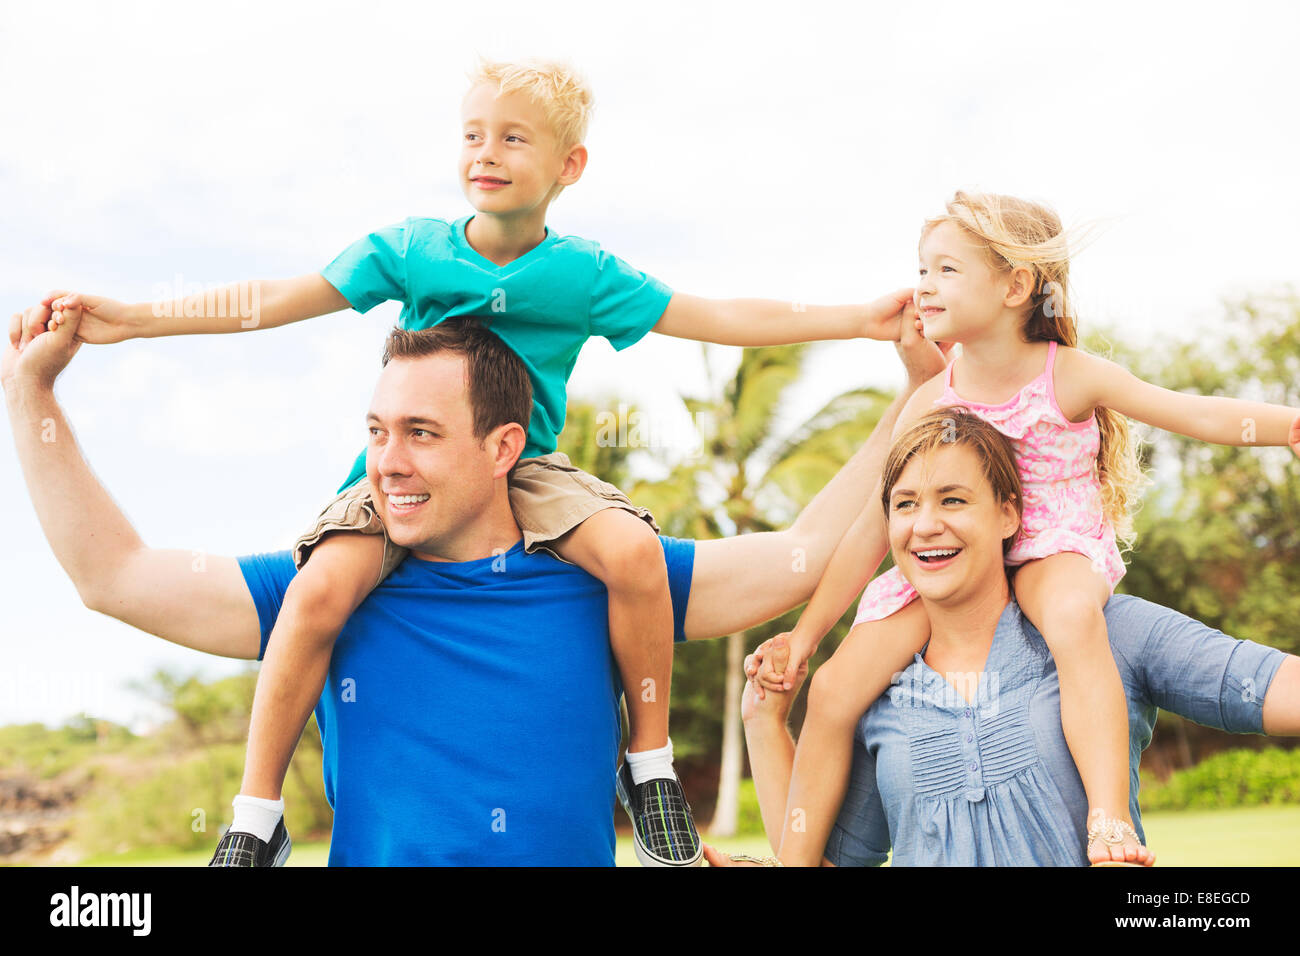 Portrait of Happy Family of Four Outside Playing - Stock Image